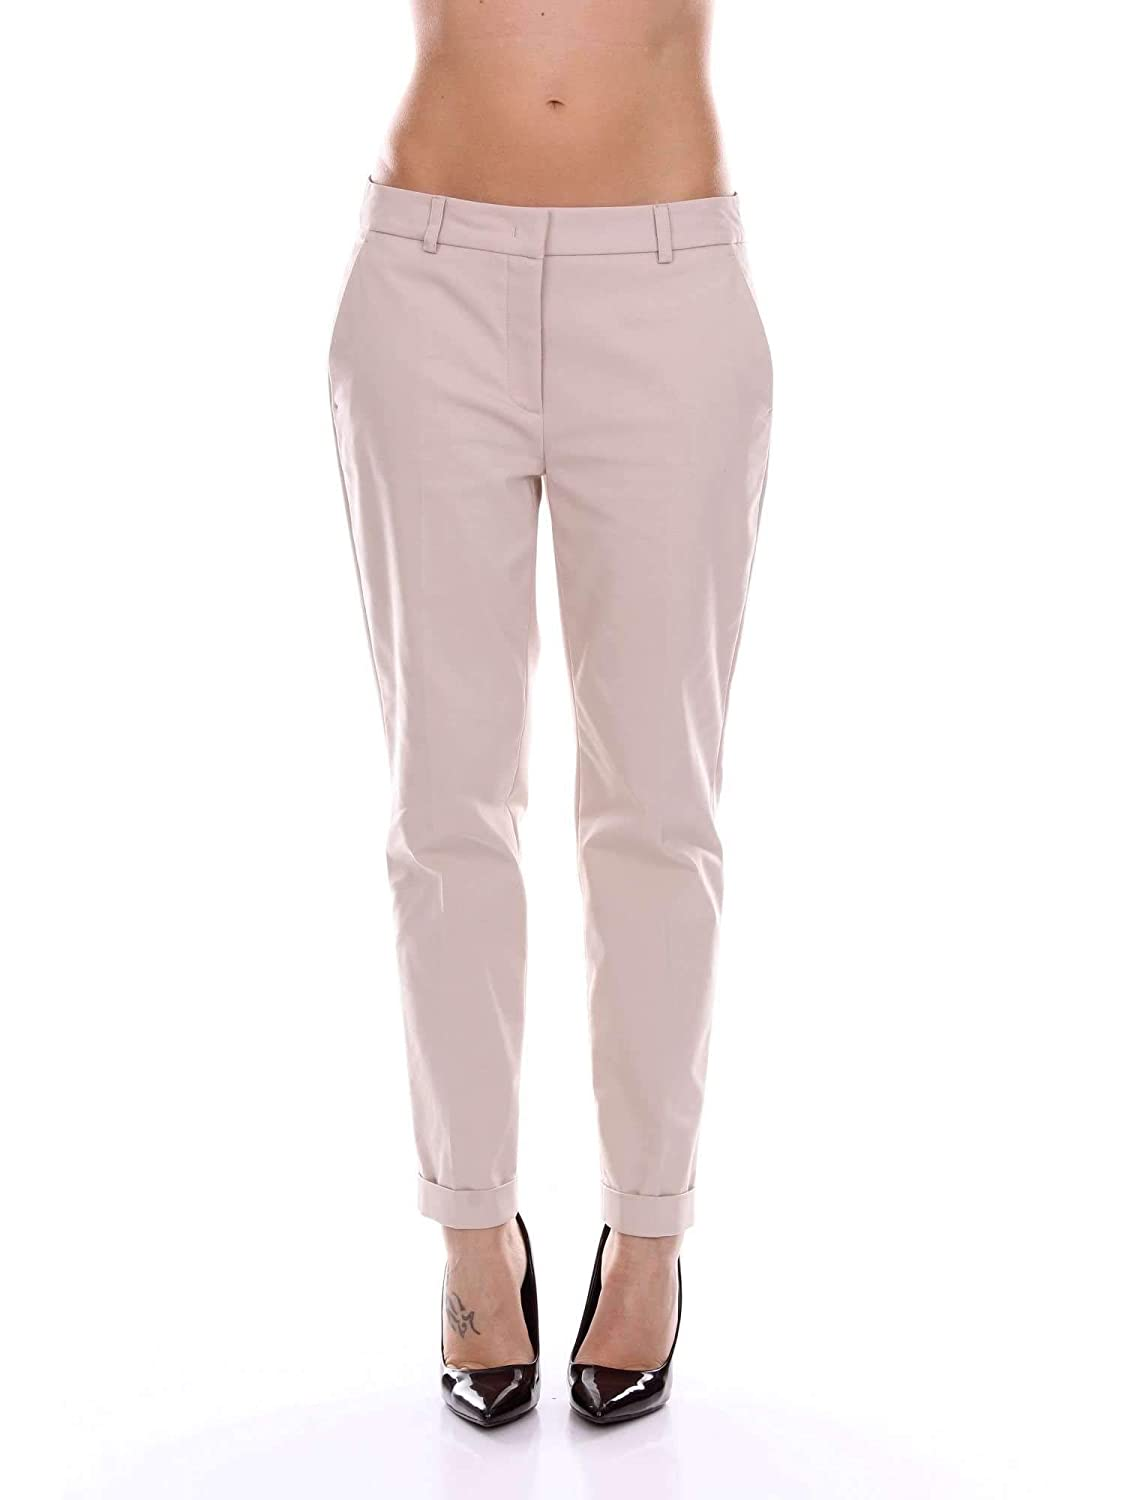 Diana Zini Women's 011956317849BEIGE Beige Cotton Pants